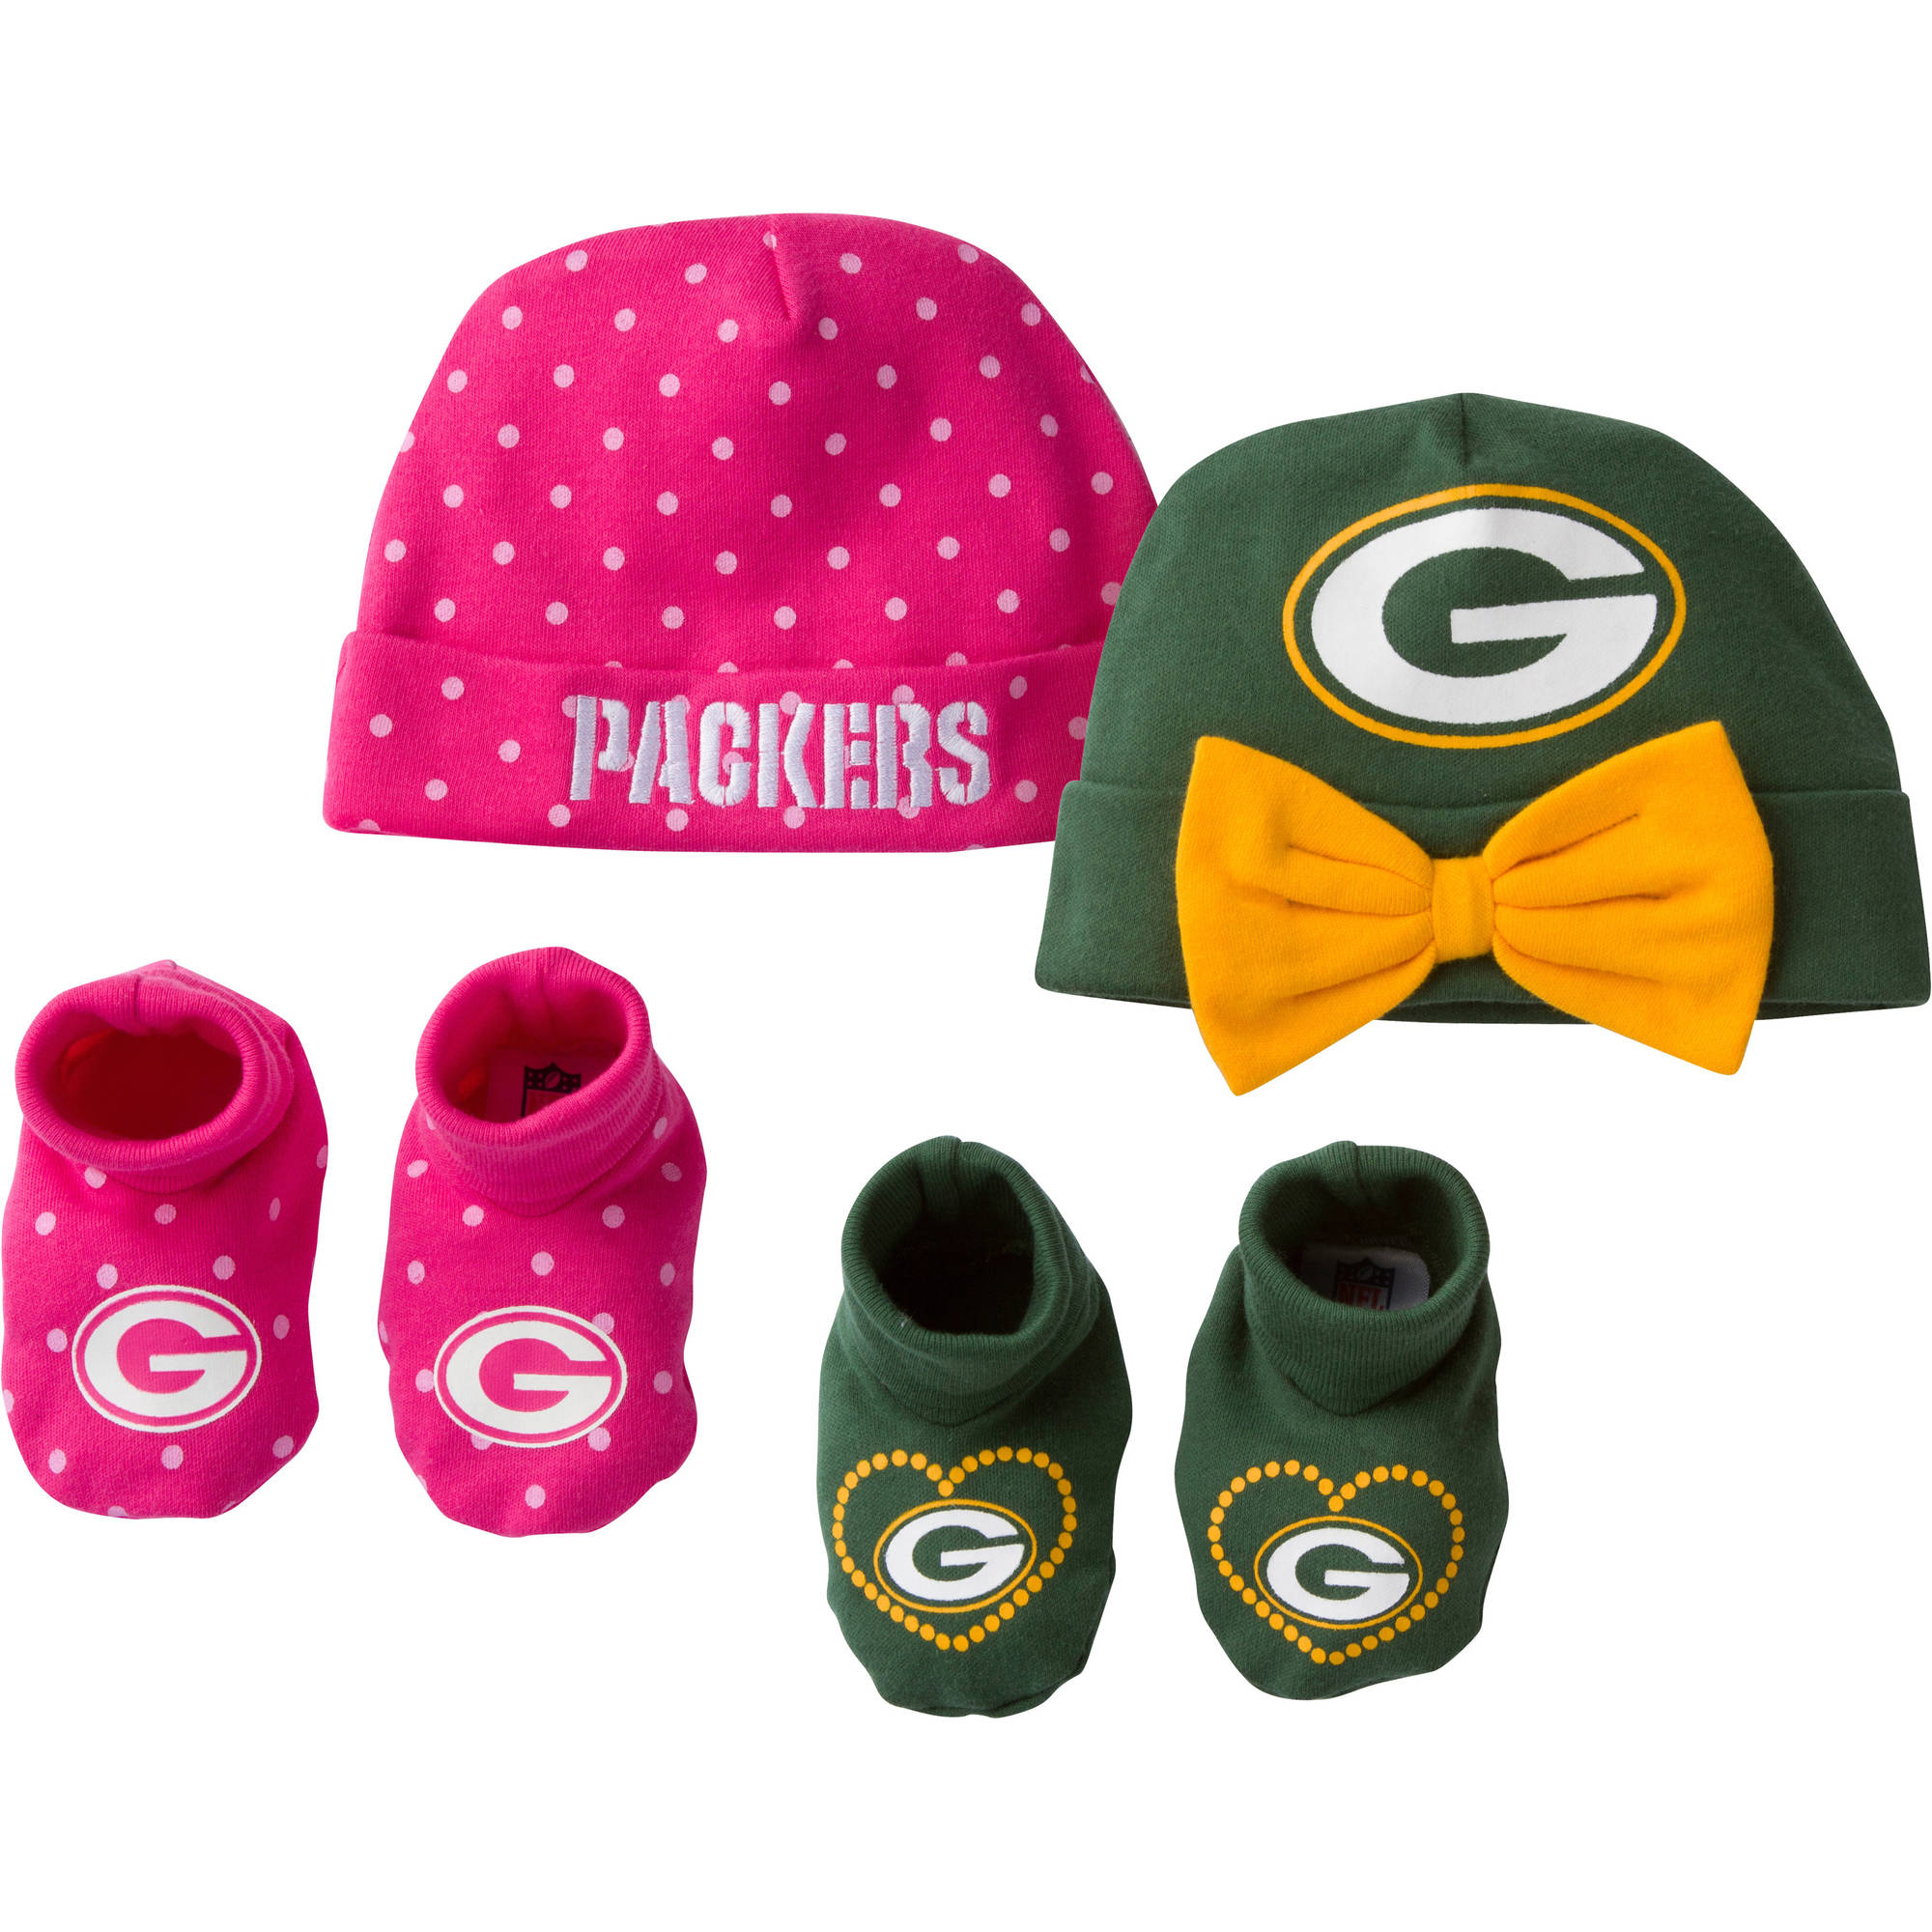 NFL Green Bay Packers Baby Girls Accessory Set, 2 Caps and 2 Booties, 4-Piece